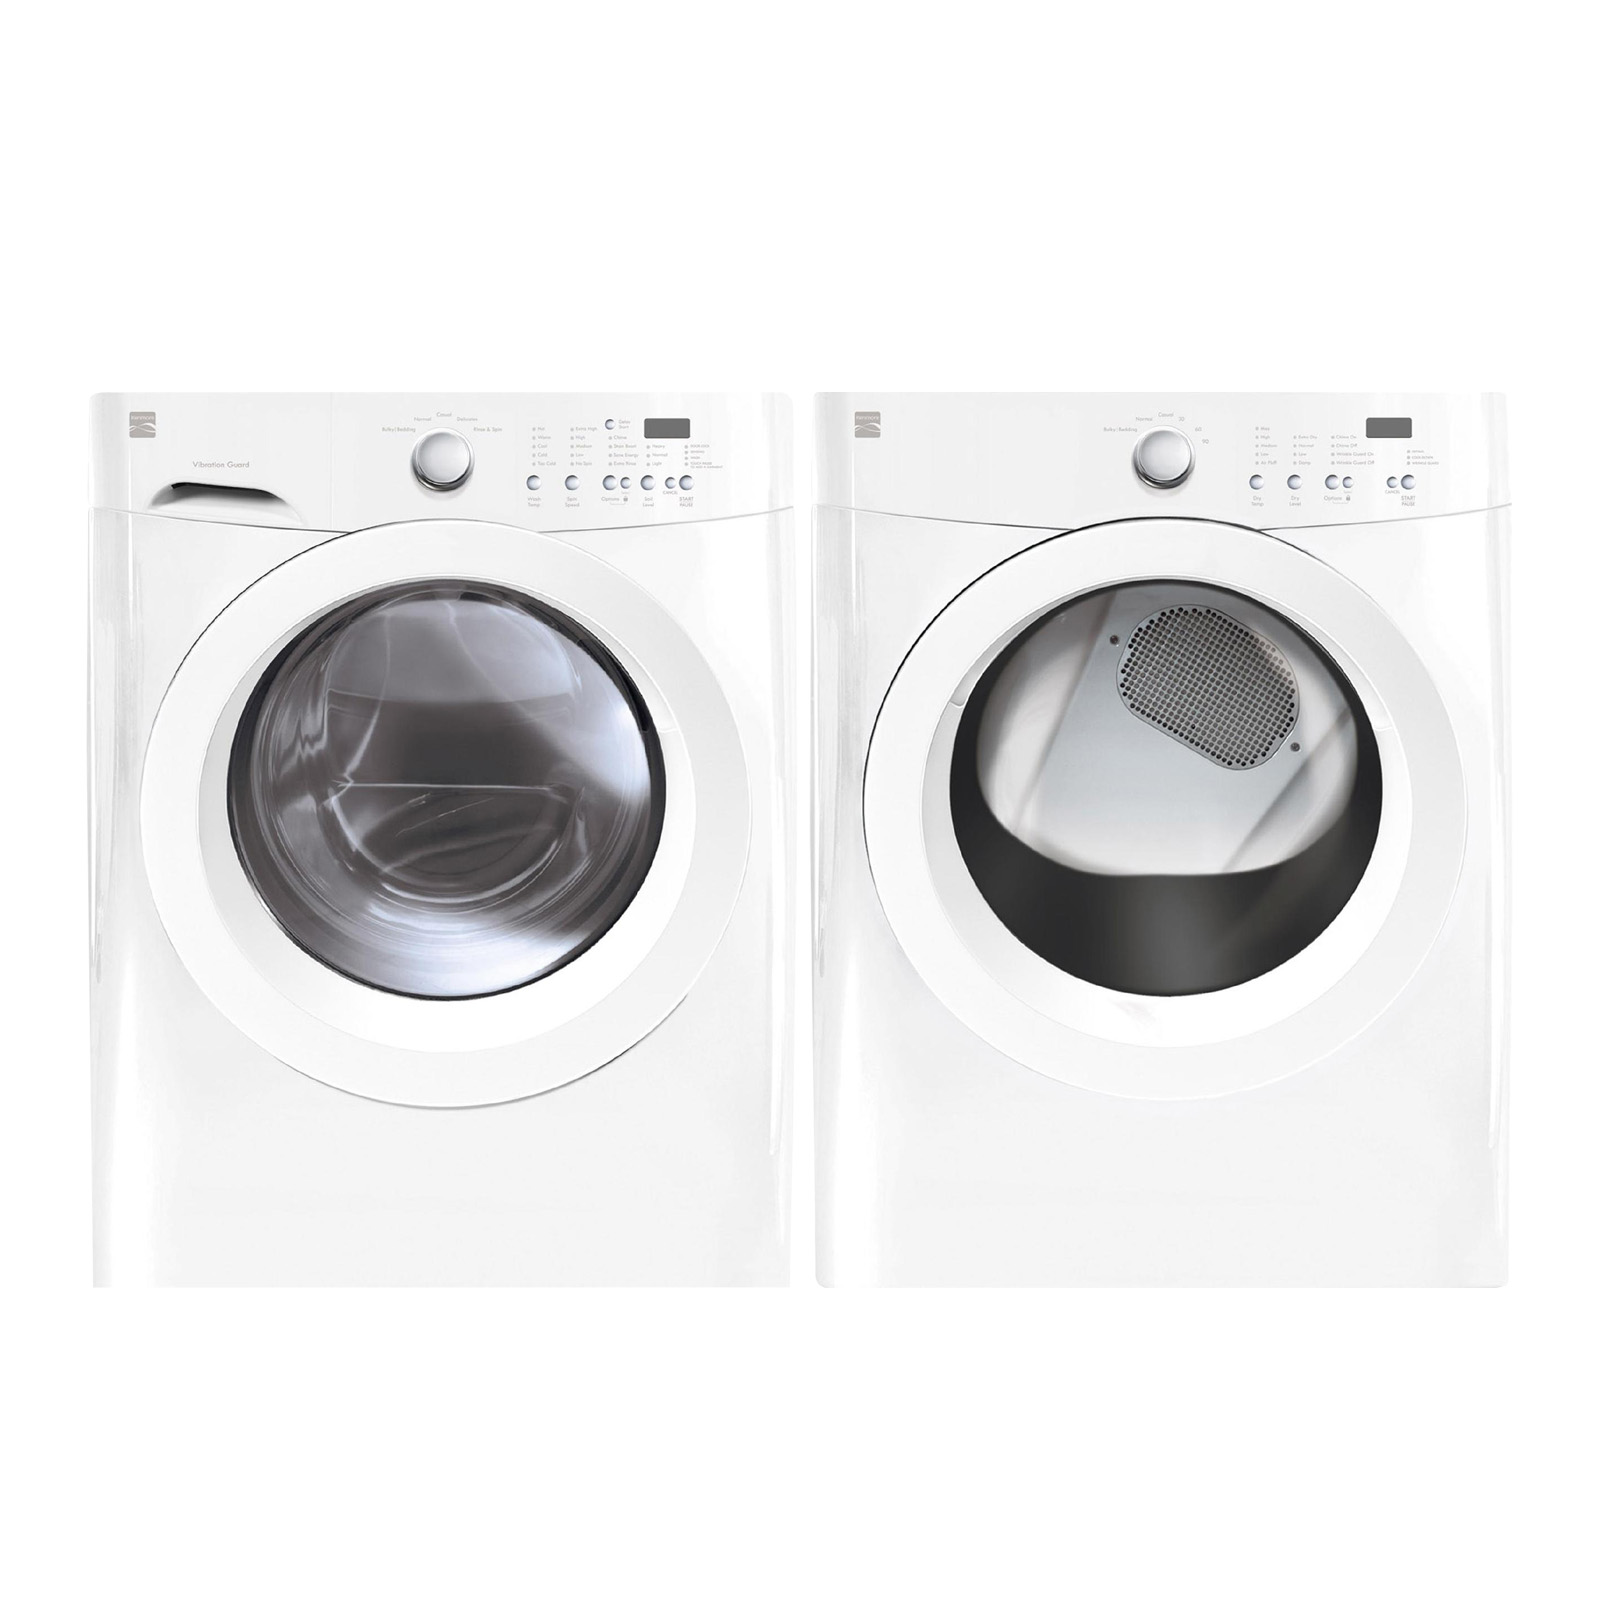 3.7 cu. ft. Front-Load Washer & Kenmore 7.0 cu. ft. Dryer Bundle